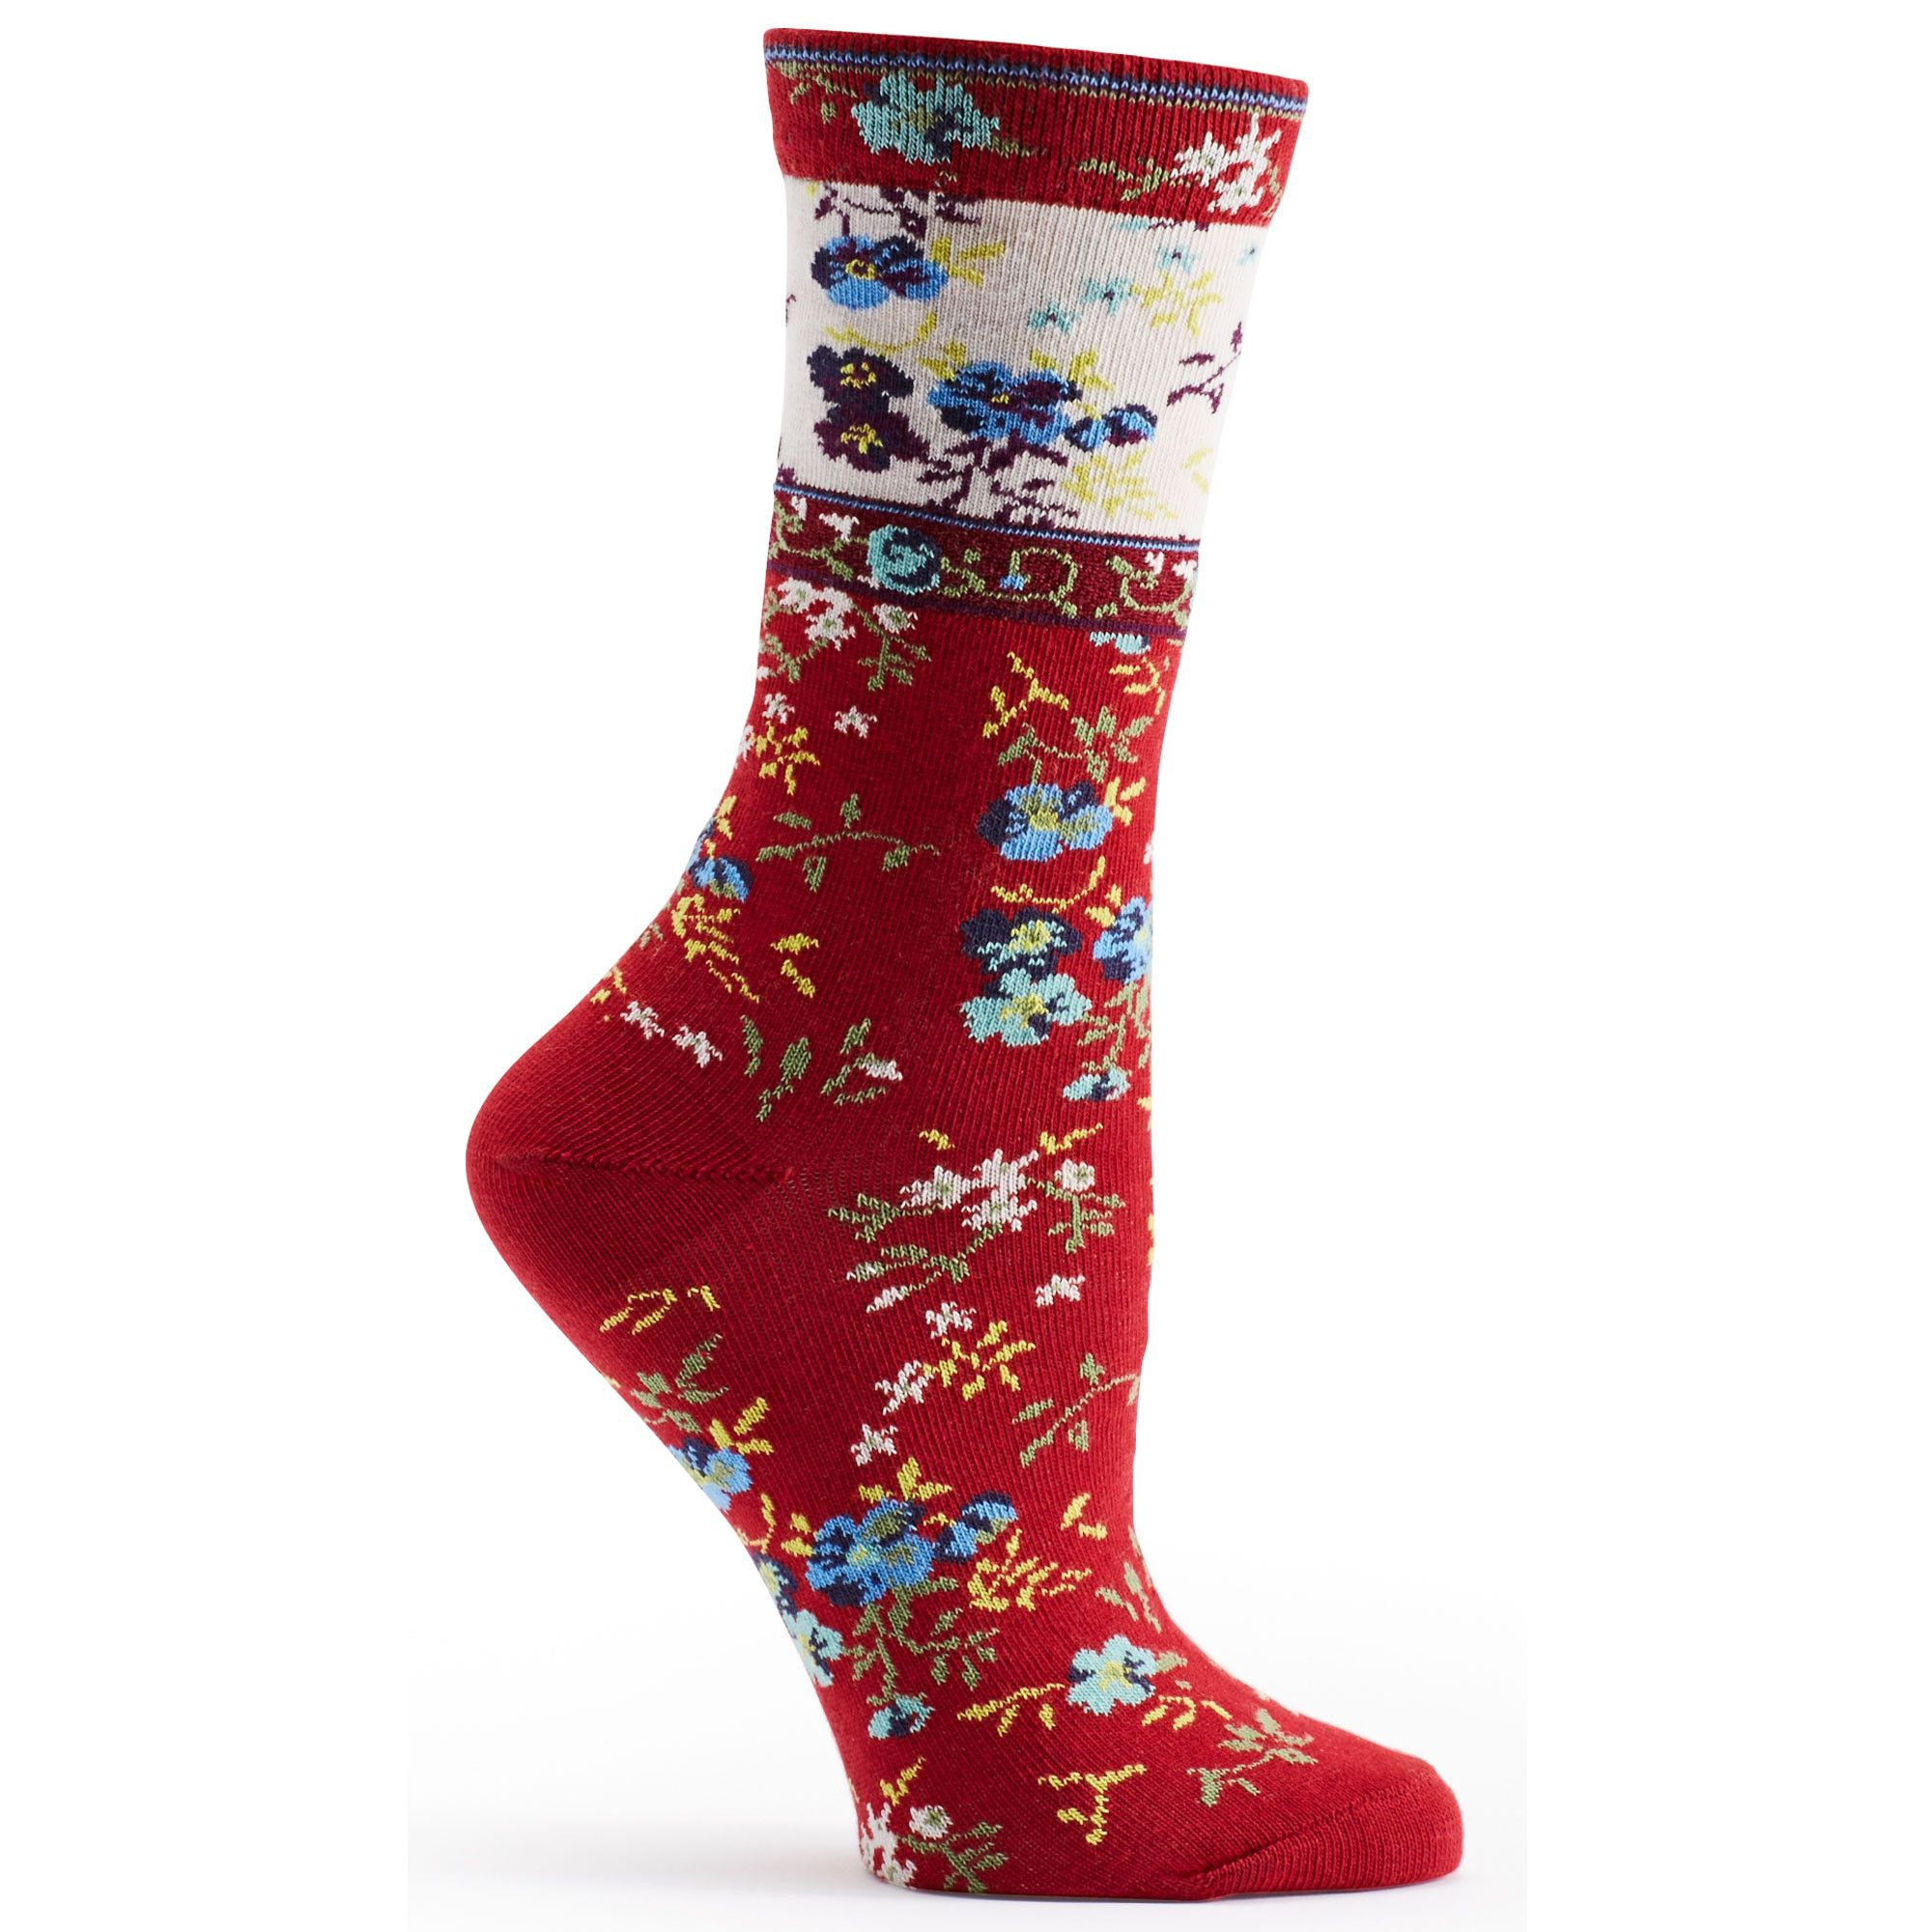 b6f3f5d7a63d2 Ozone Socks Floral Mona Linen Sock - Assorted Colors - Free Shipping!